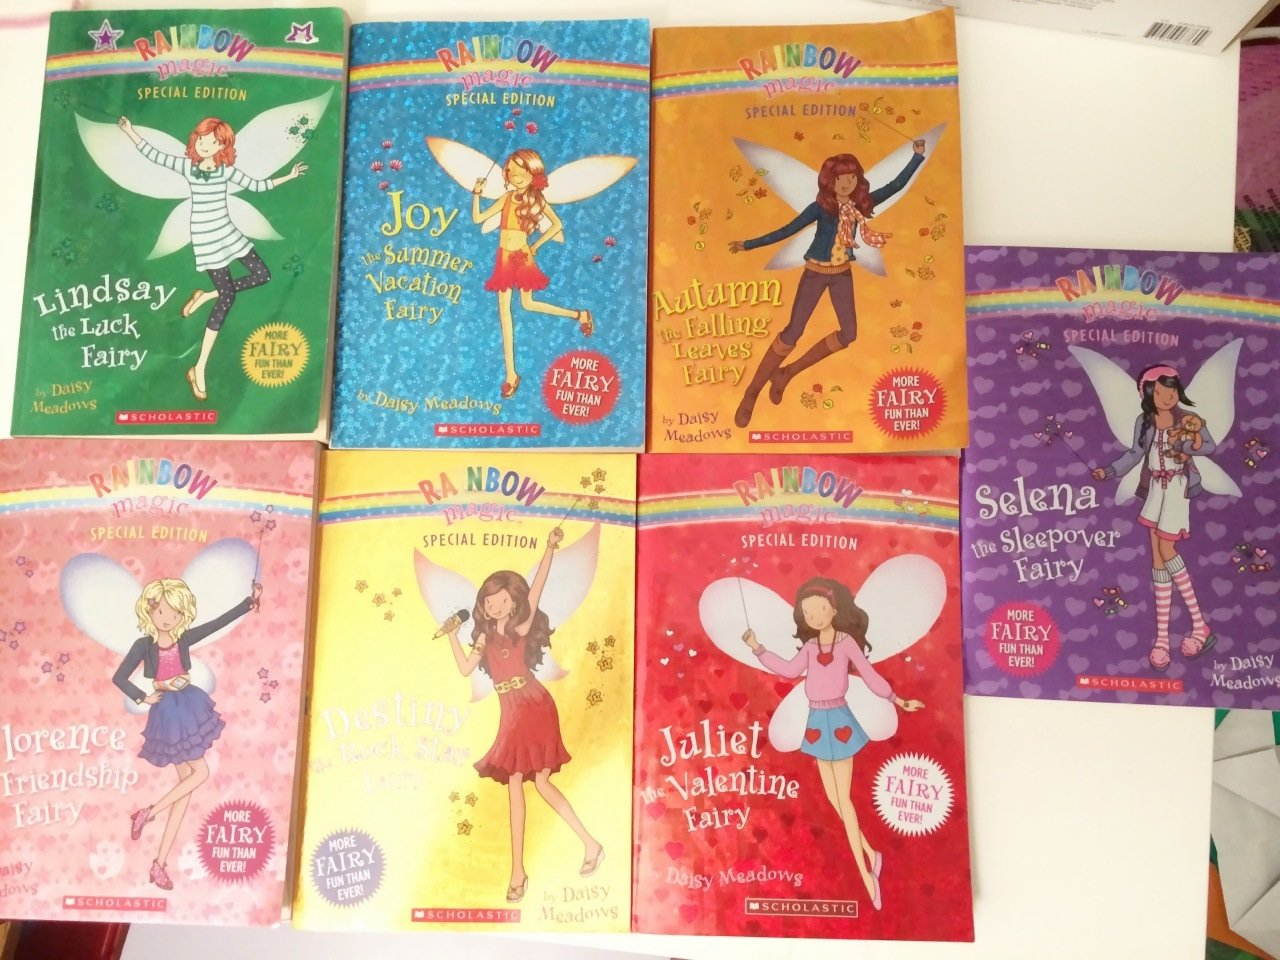 Download Rainbow Magic Special Edition 7 Book Set - Joy the Summer Vacation Fairy, Selena the Sleepover, Lindsay the Luck, Juliet the Valentine, Destiny the Rock Star, Florence the Friendship, Autumn the Falling Leaves Fairy PDF